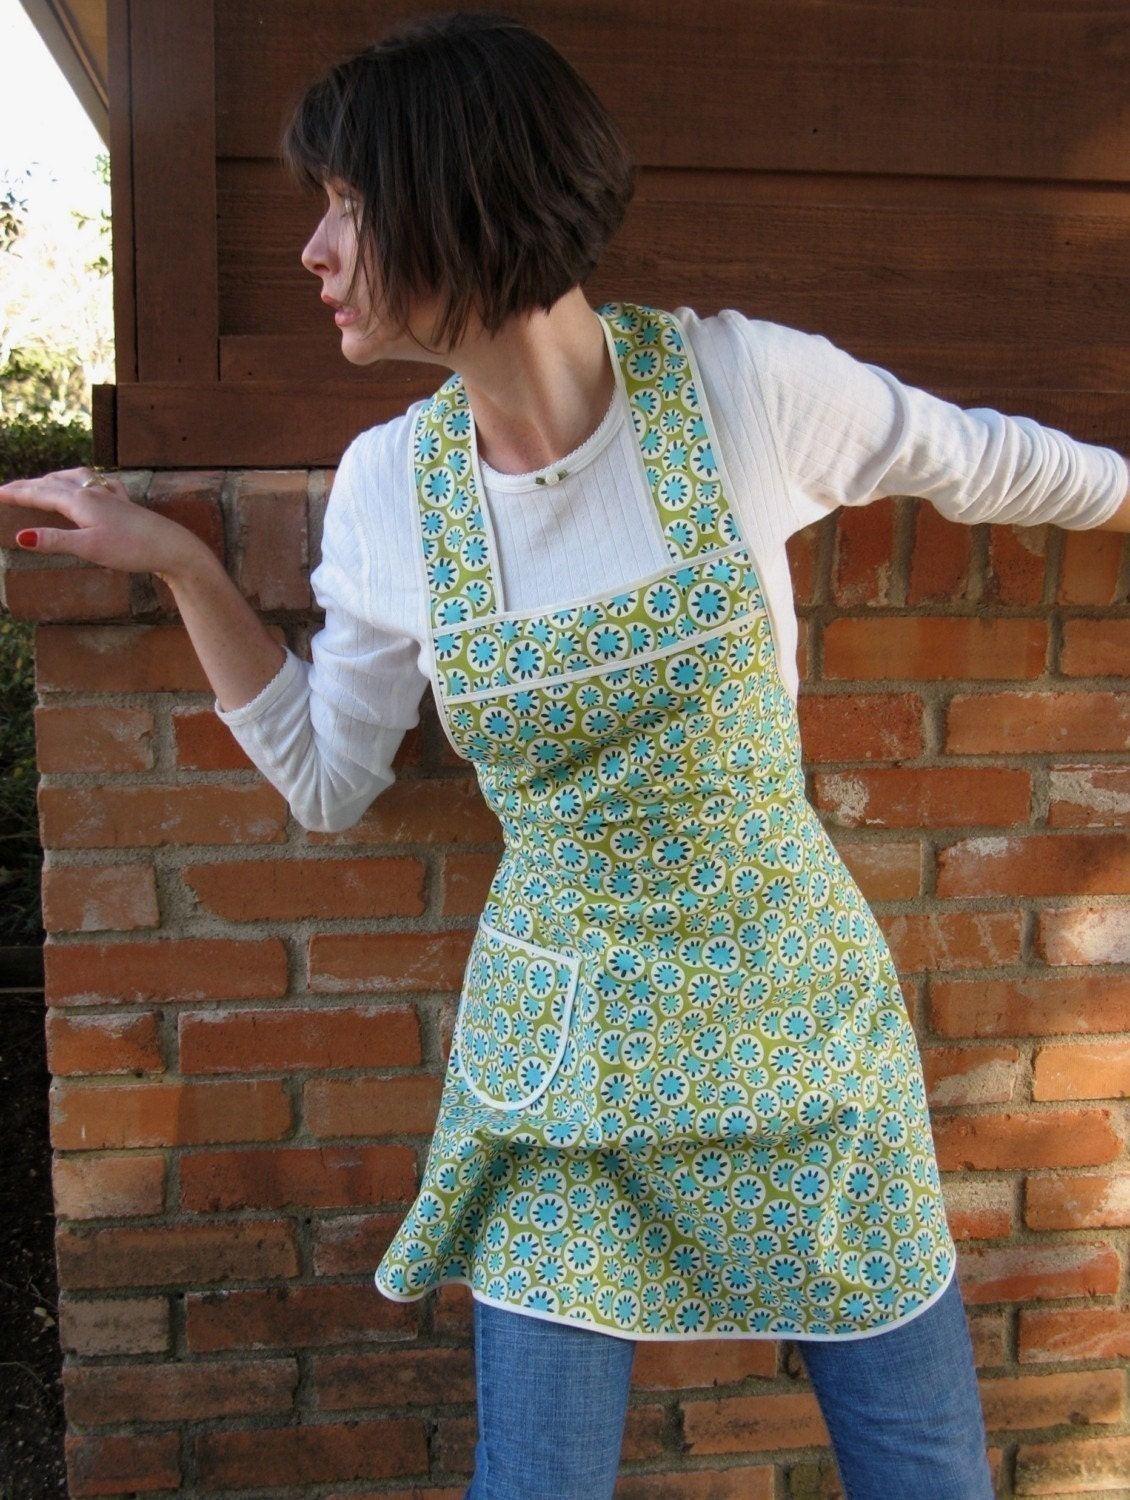 Turquoise Retro Amy Butler Apron - Flirty Everyday Housewife Apron